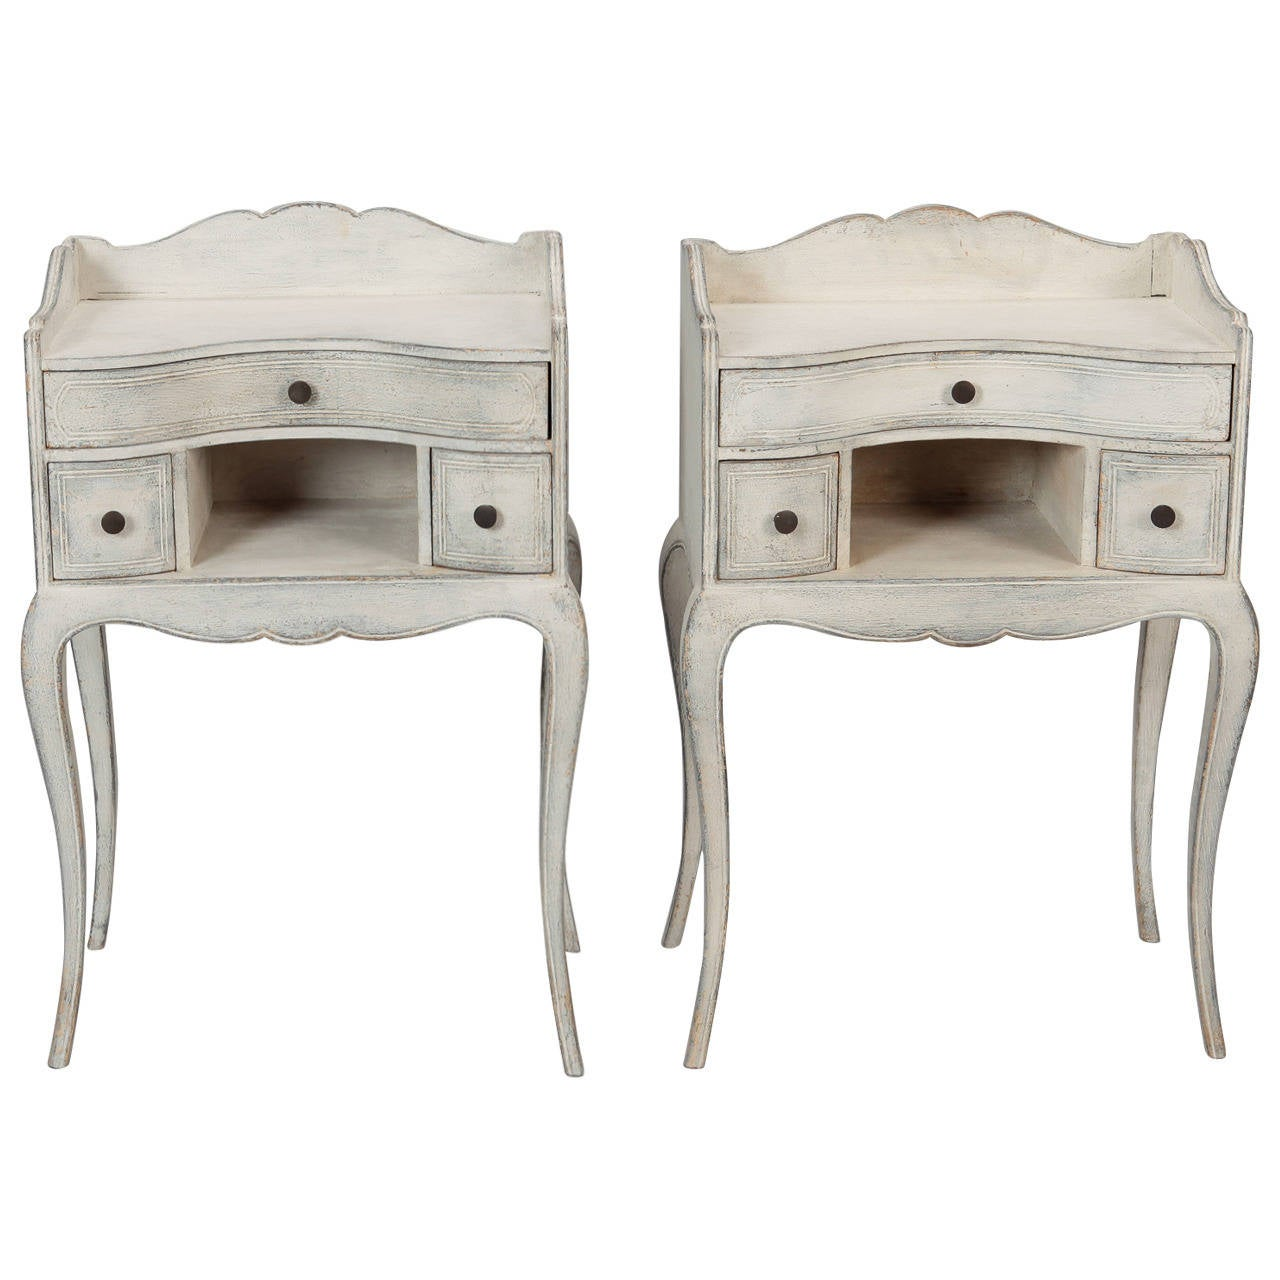 Pair of french antique white bedside tables at 1stdibs pair of french antique white bedside tables for sale watchthetrailerfo